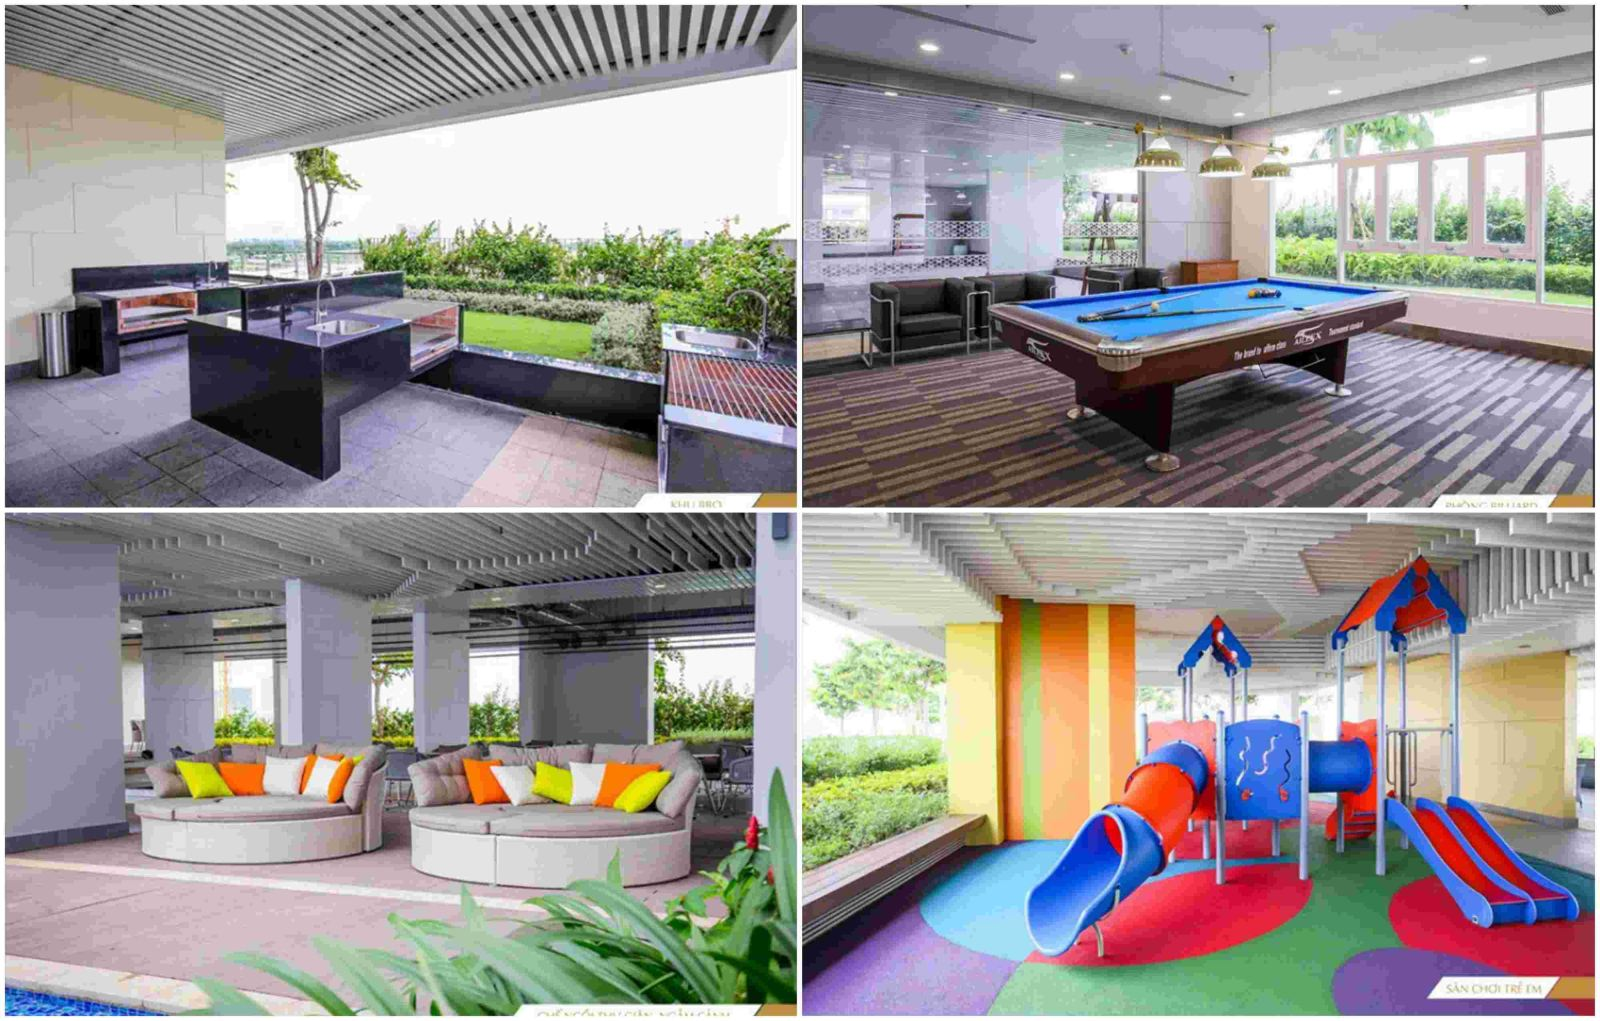 Retal residents can enjoy modern facilities at Sarimi Dai Quang Minh